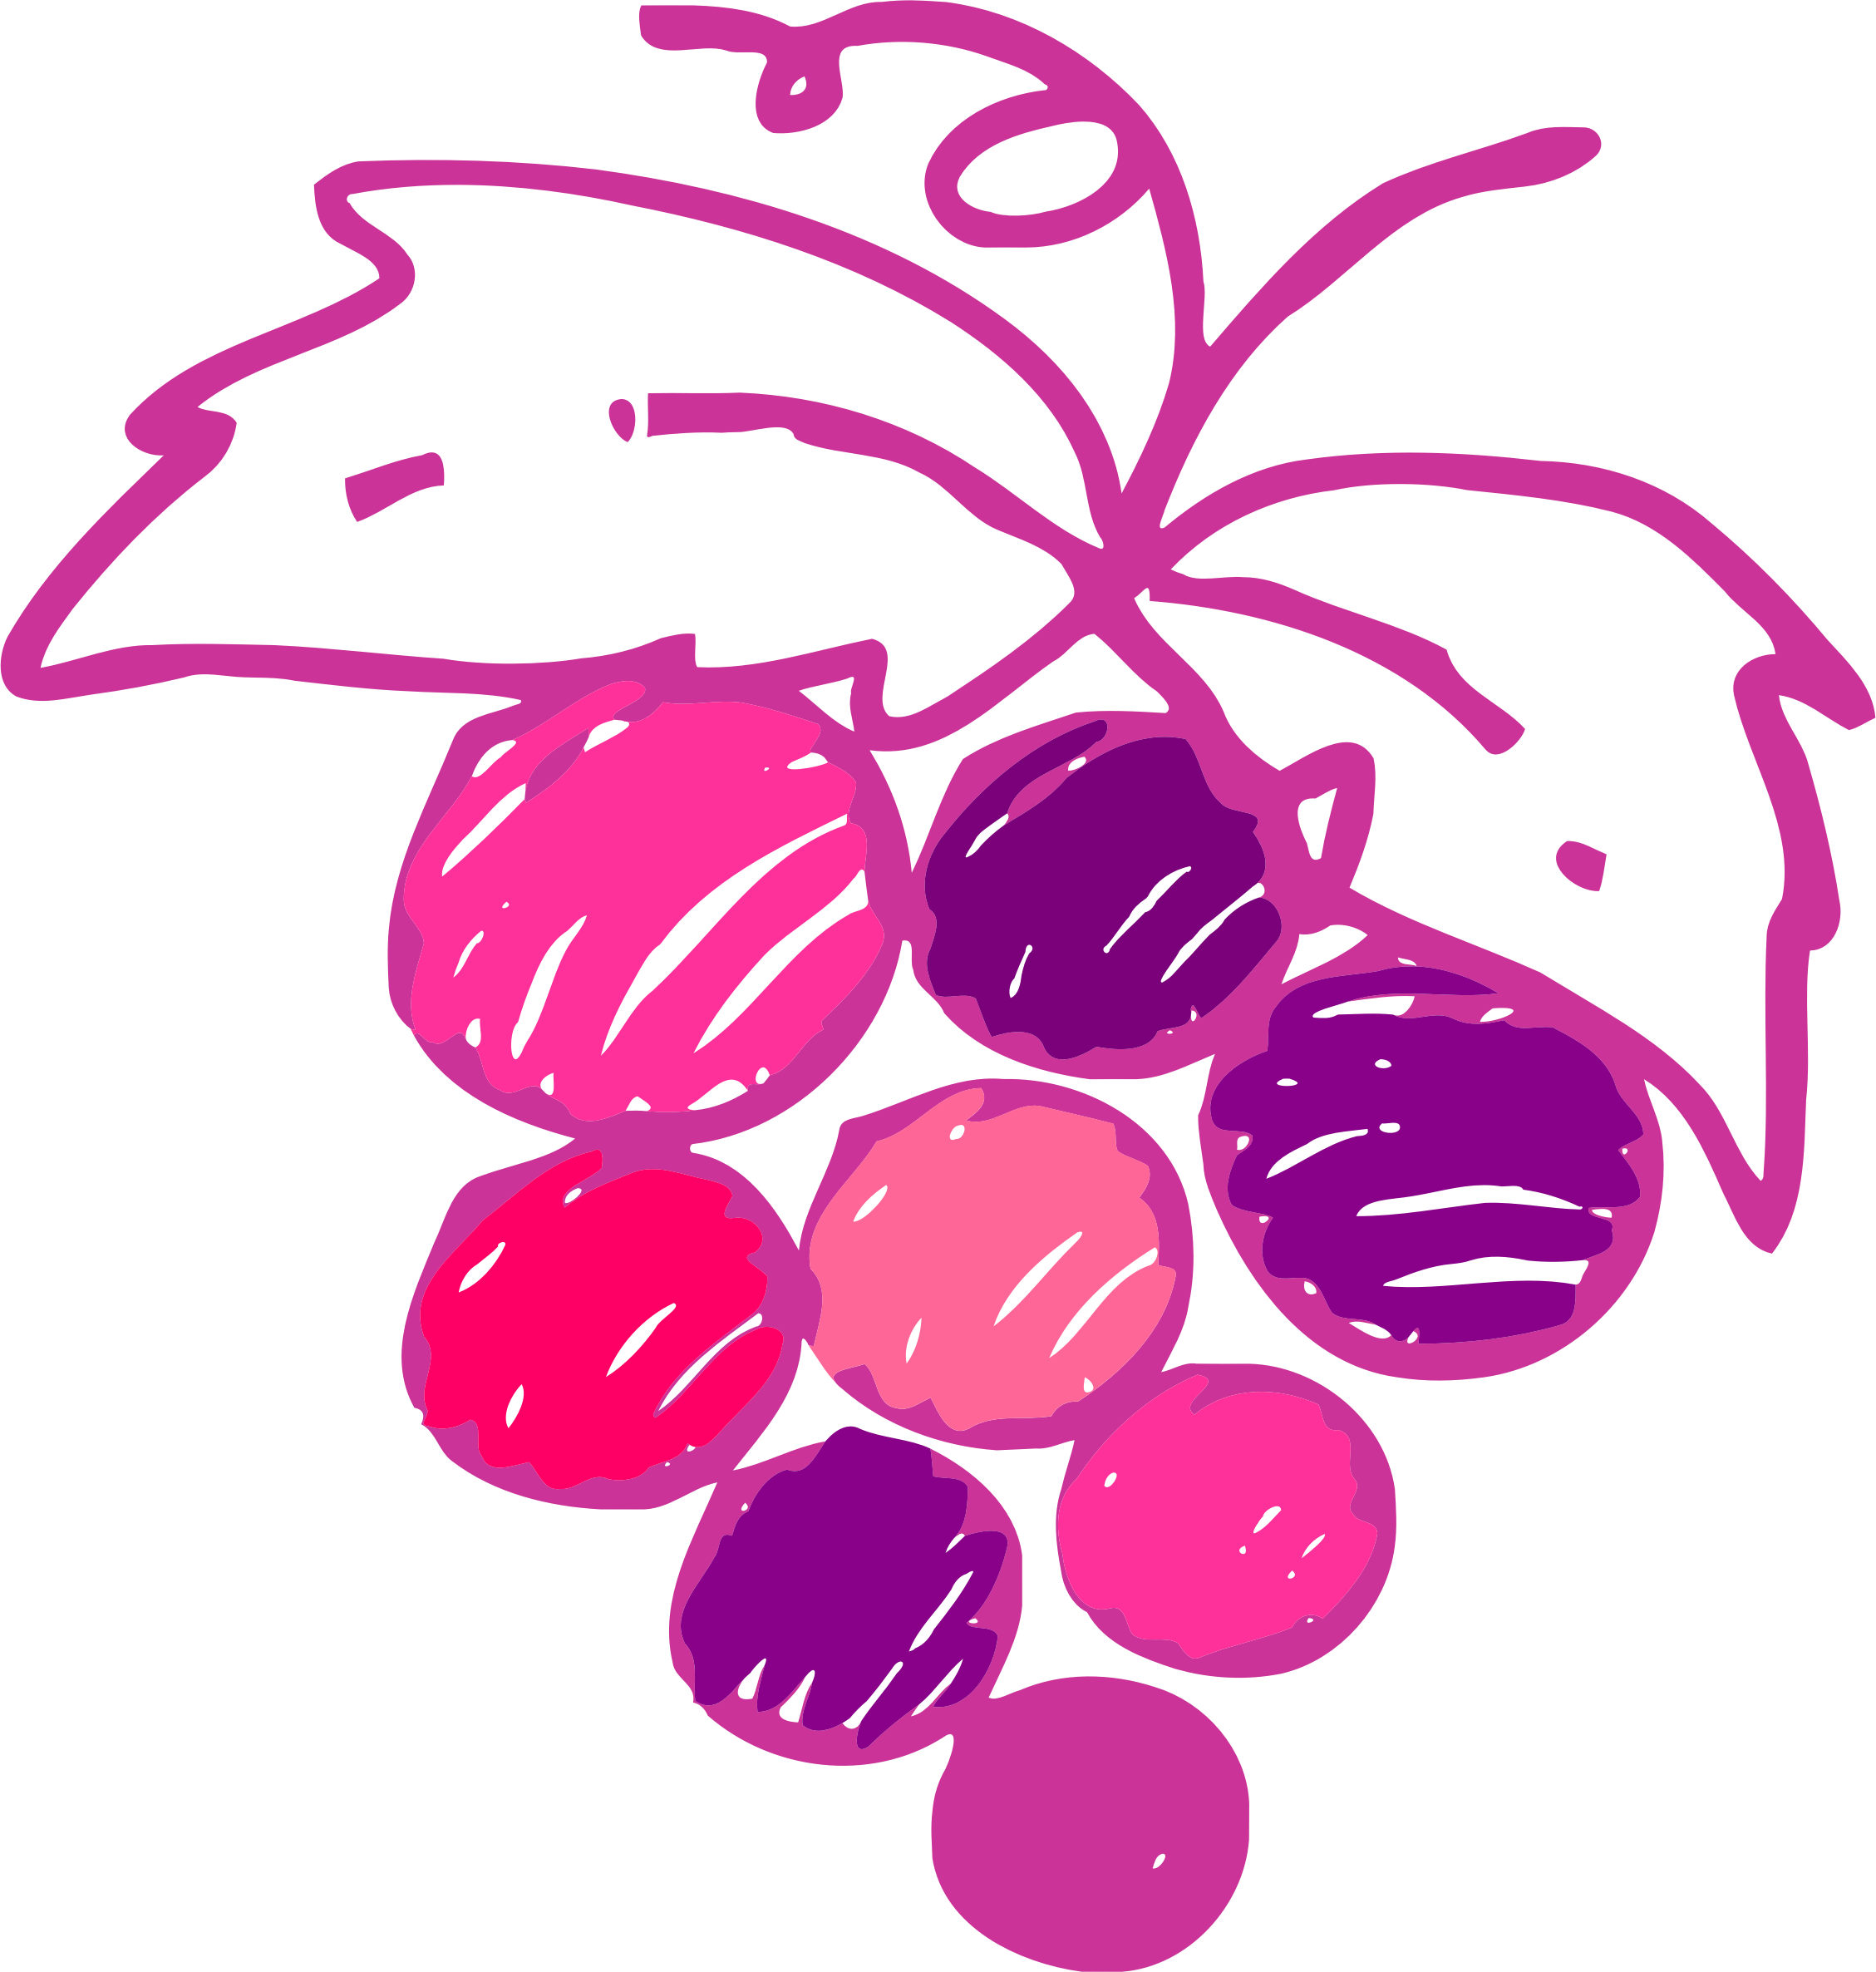 Sketched grapes by Firkin